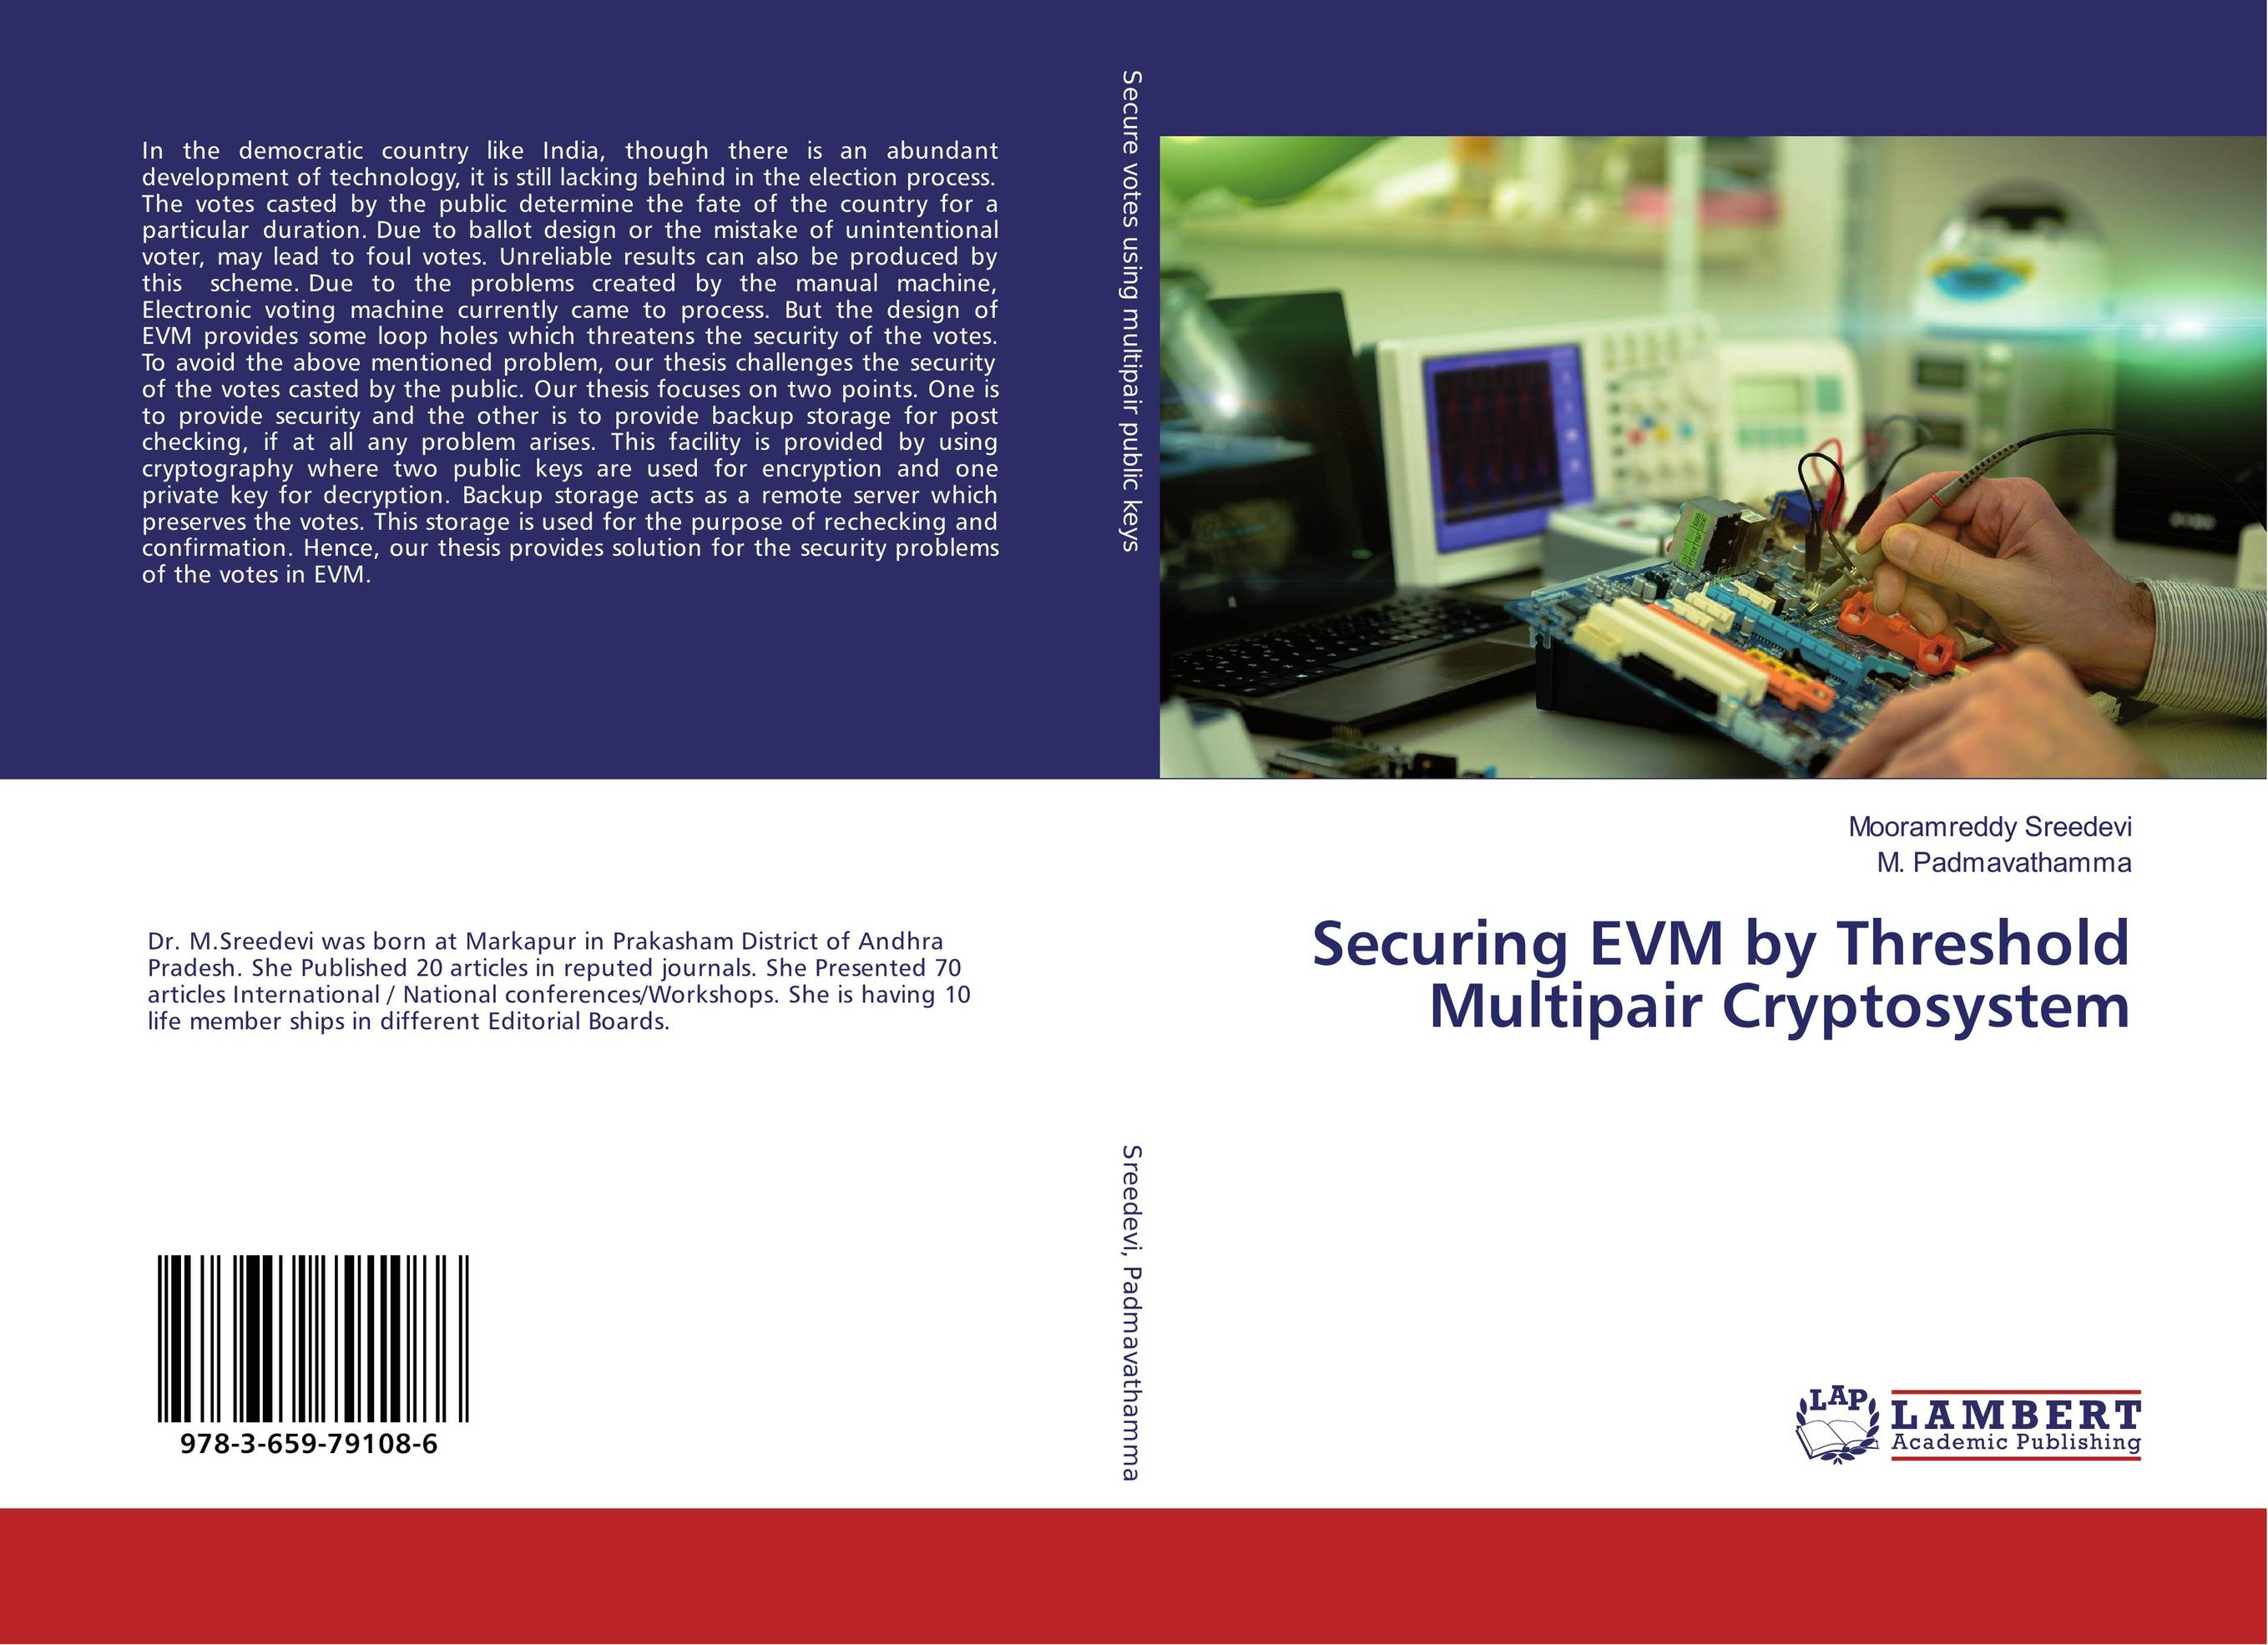 Securing EVM by Threshold Multipair Cryptosystem